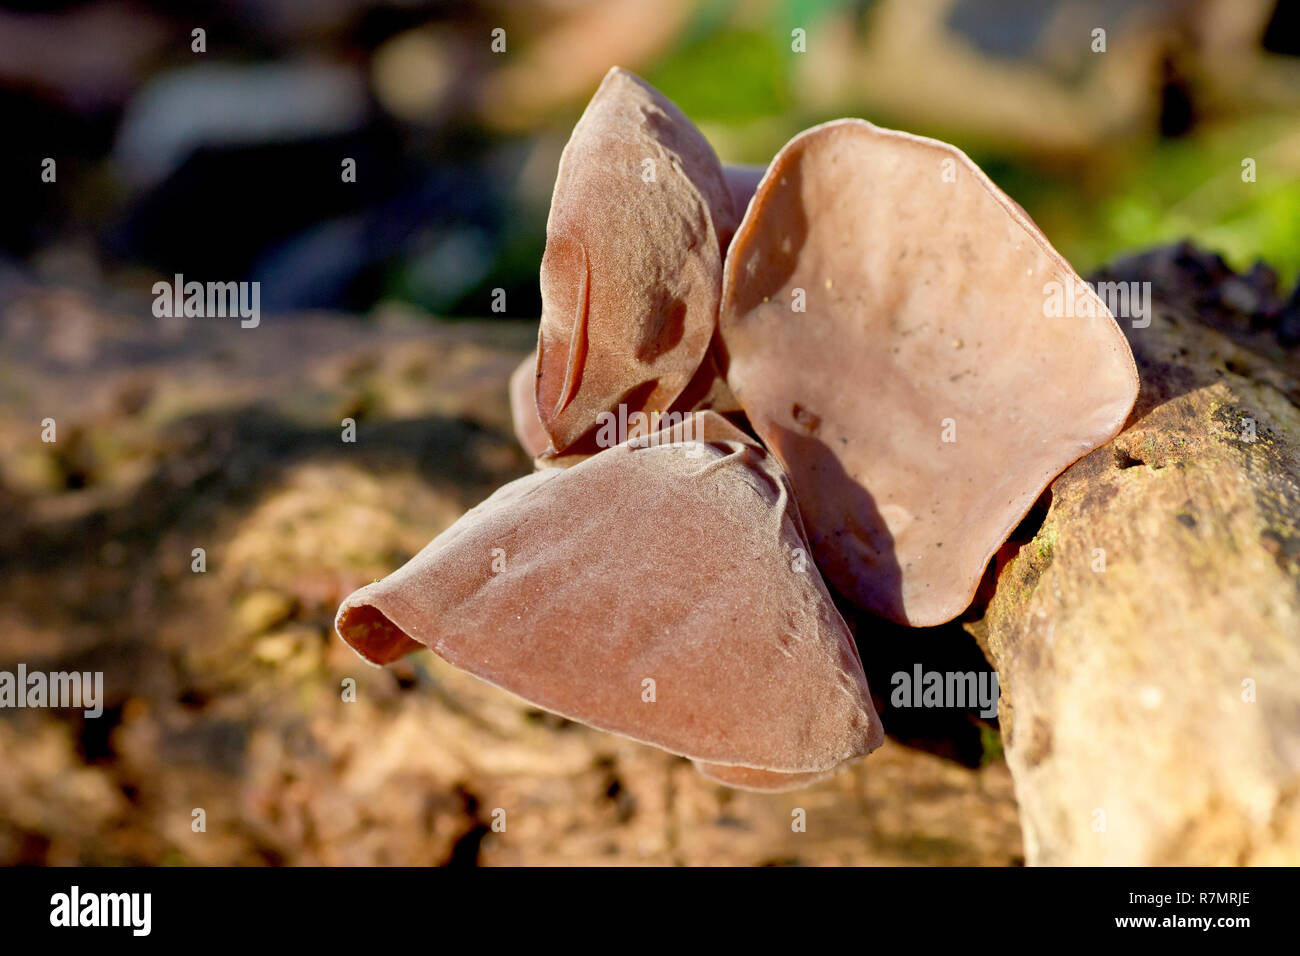 Close up of Hirneola Auricula-judae fungi growing on a fallen tree. Formerly known as Jew's Ear, now commonly called Jelly Ear. - Stock Image